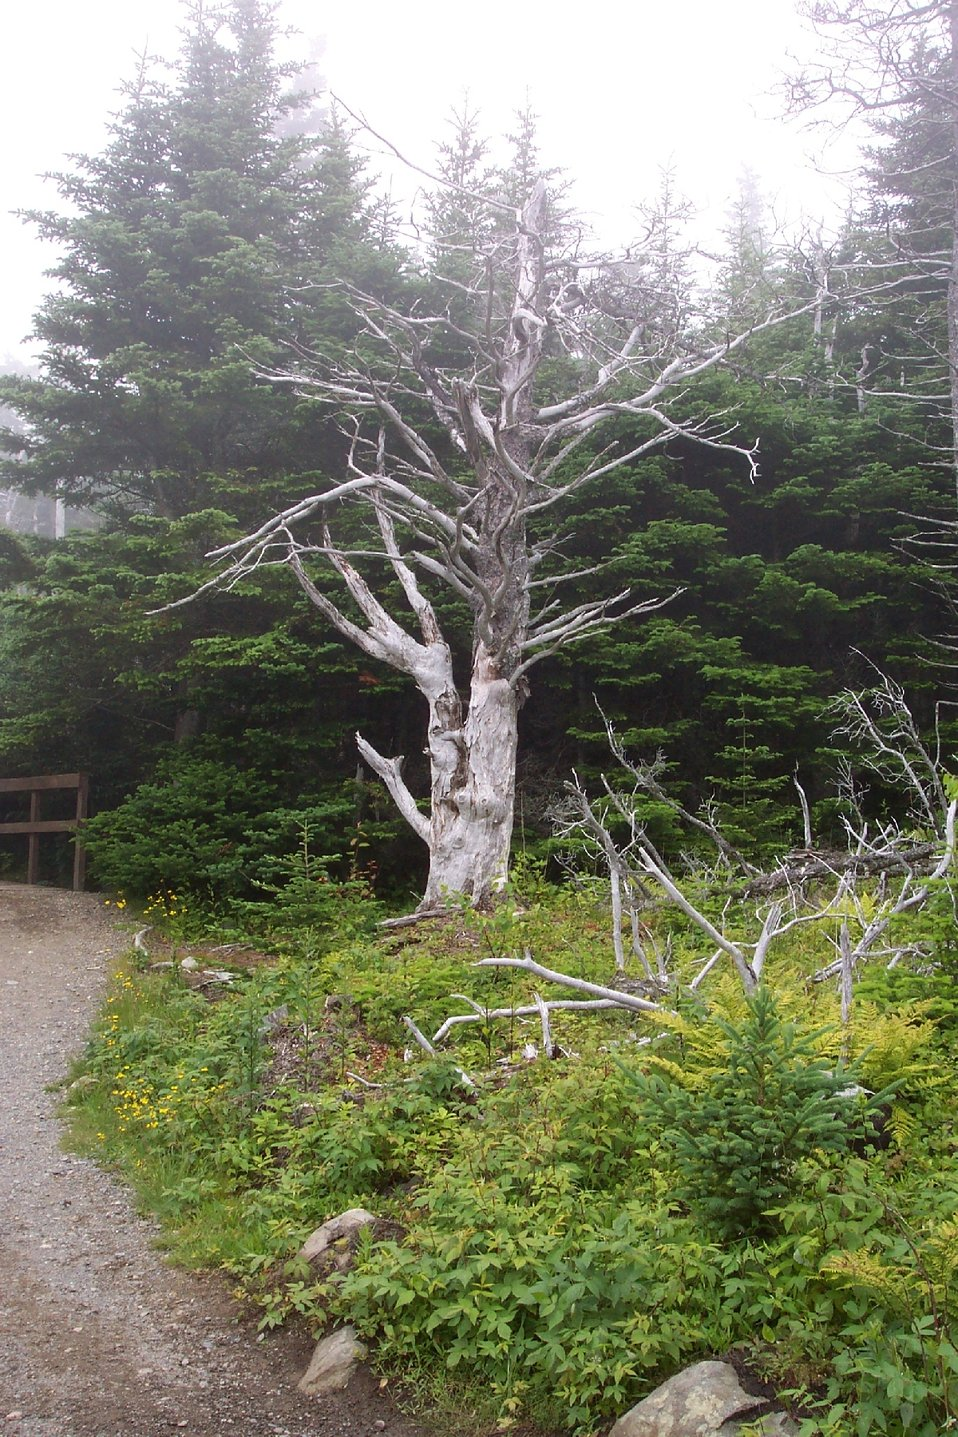 Another good tree for a Harry Potter story at West Quoddy Head.